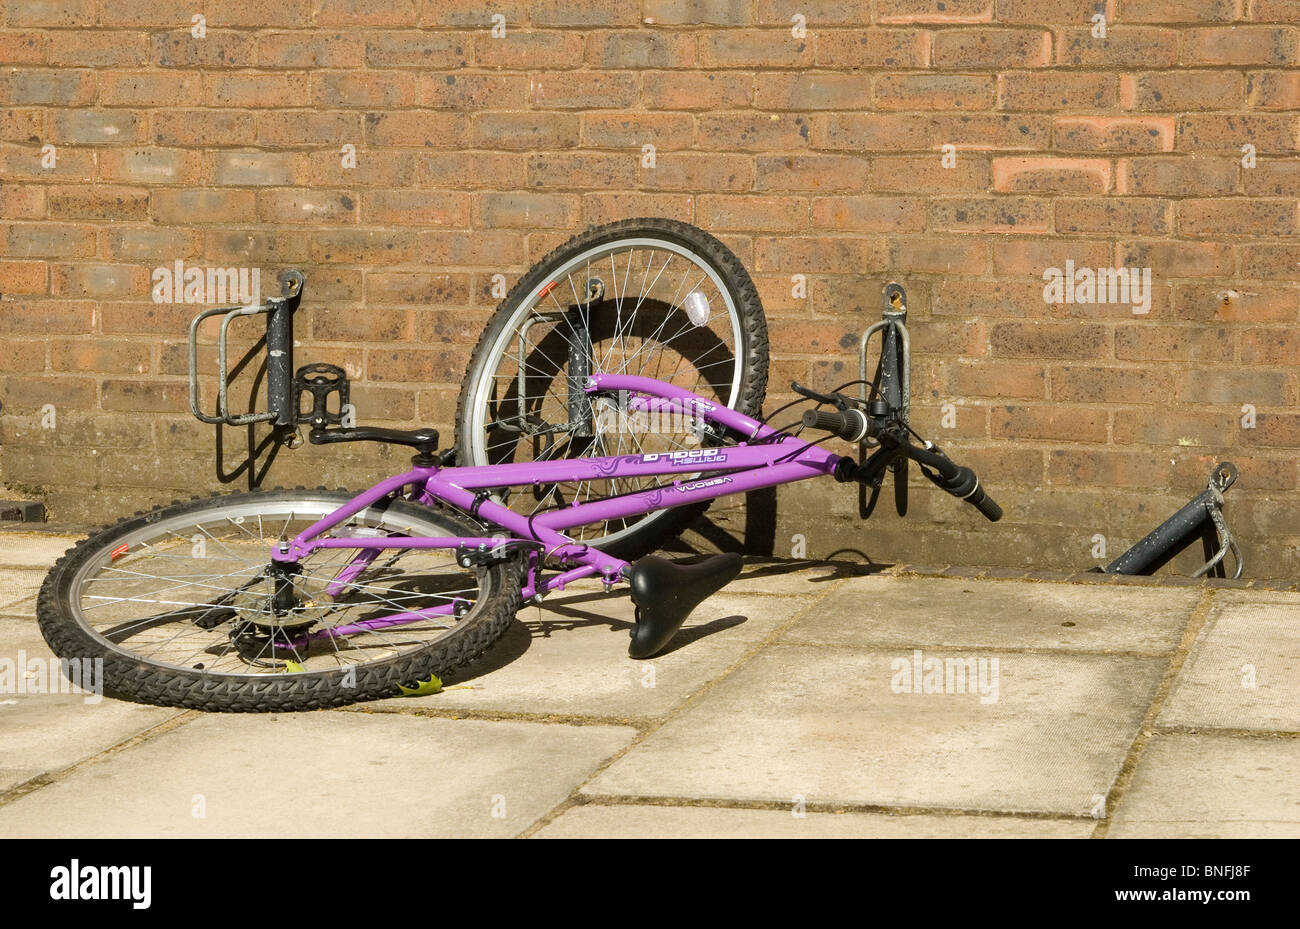 A fallen bicycle is a common sight in Cambridge in areas where butterfly stands have been installed - Stock Image